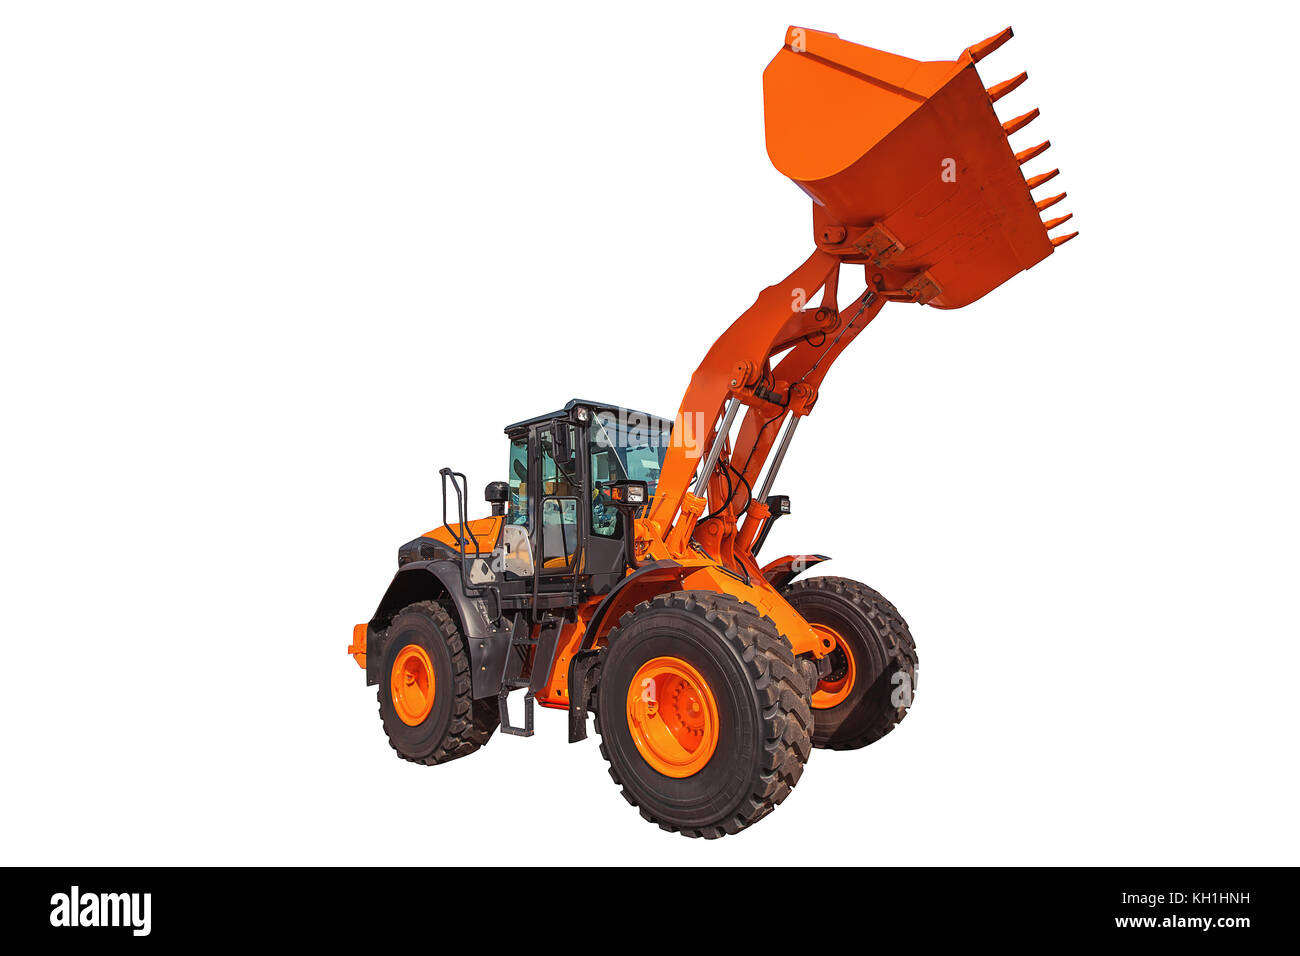 Loader excavator construction machinery equipment isolated on white background - Stock Image